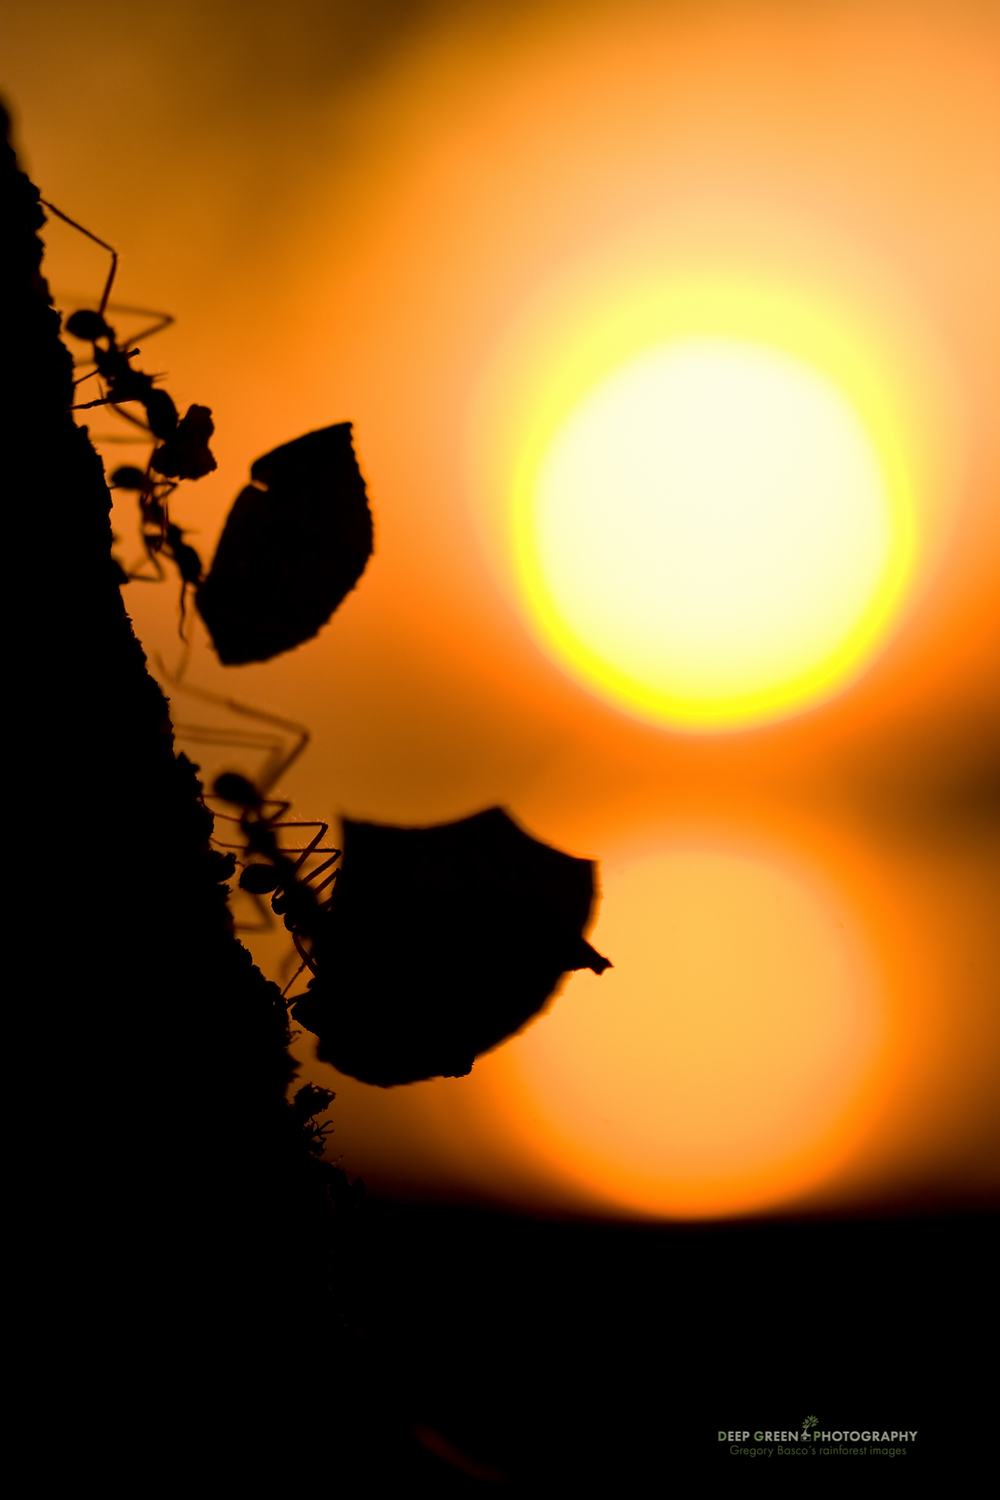 Leafcutter ants are always fascinating but what caught my eye with this scene was the setting sun and its reflection in the Pacific Ocean. Metering for the sky, I chose to silhouette the hardworking ants to produce a unique image of these amazing little creatures.